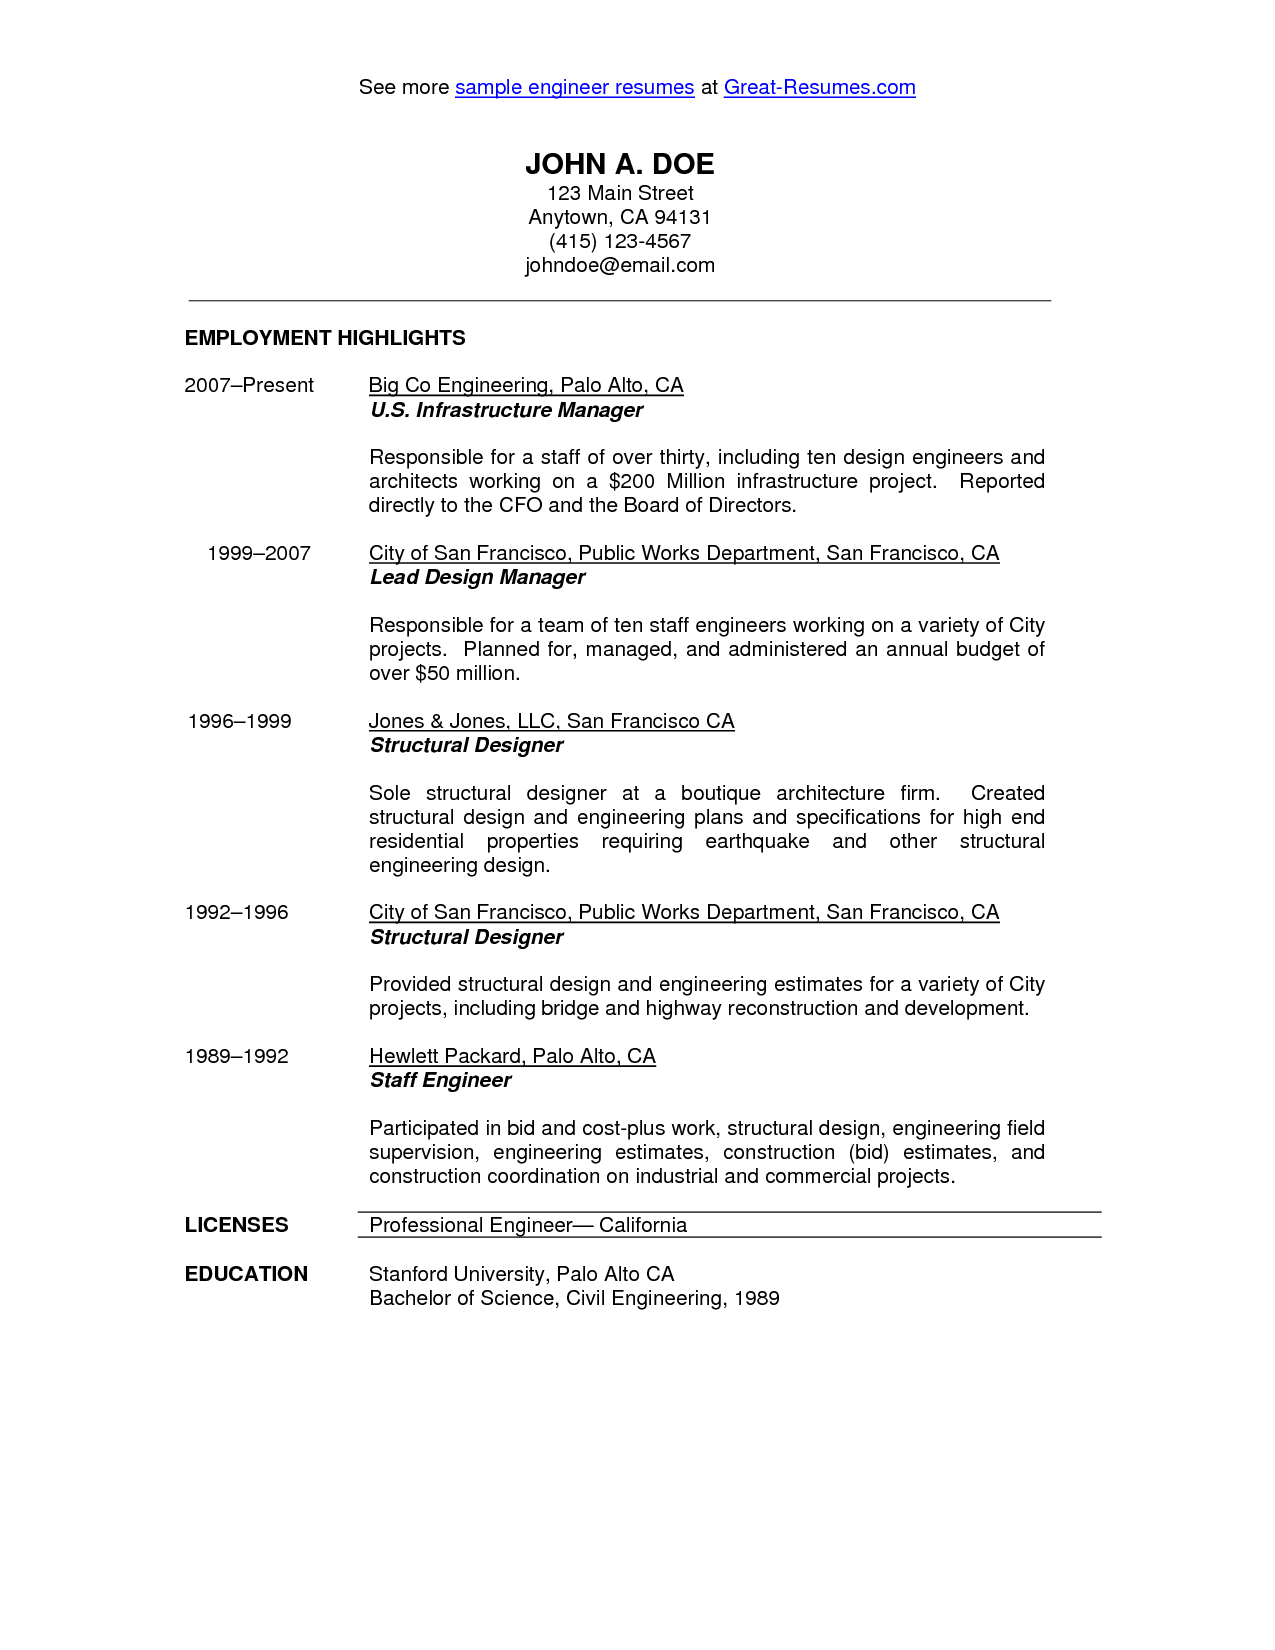 Resume Format Examples Civil Engineer Resume Sample  Httpwwwresumecareercivil